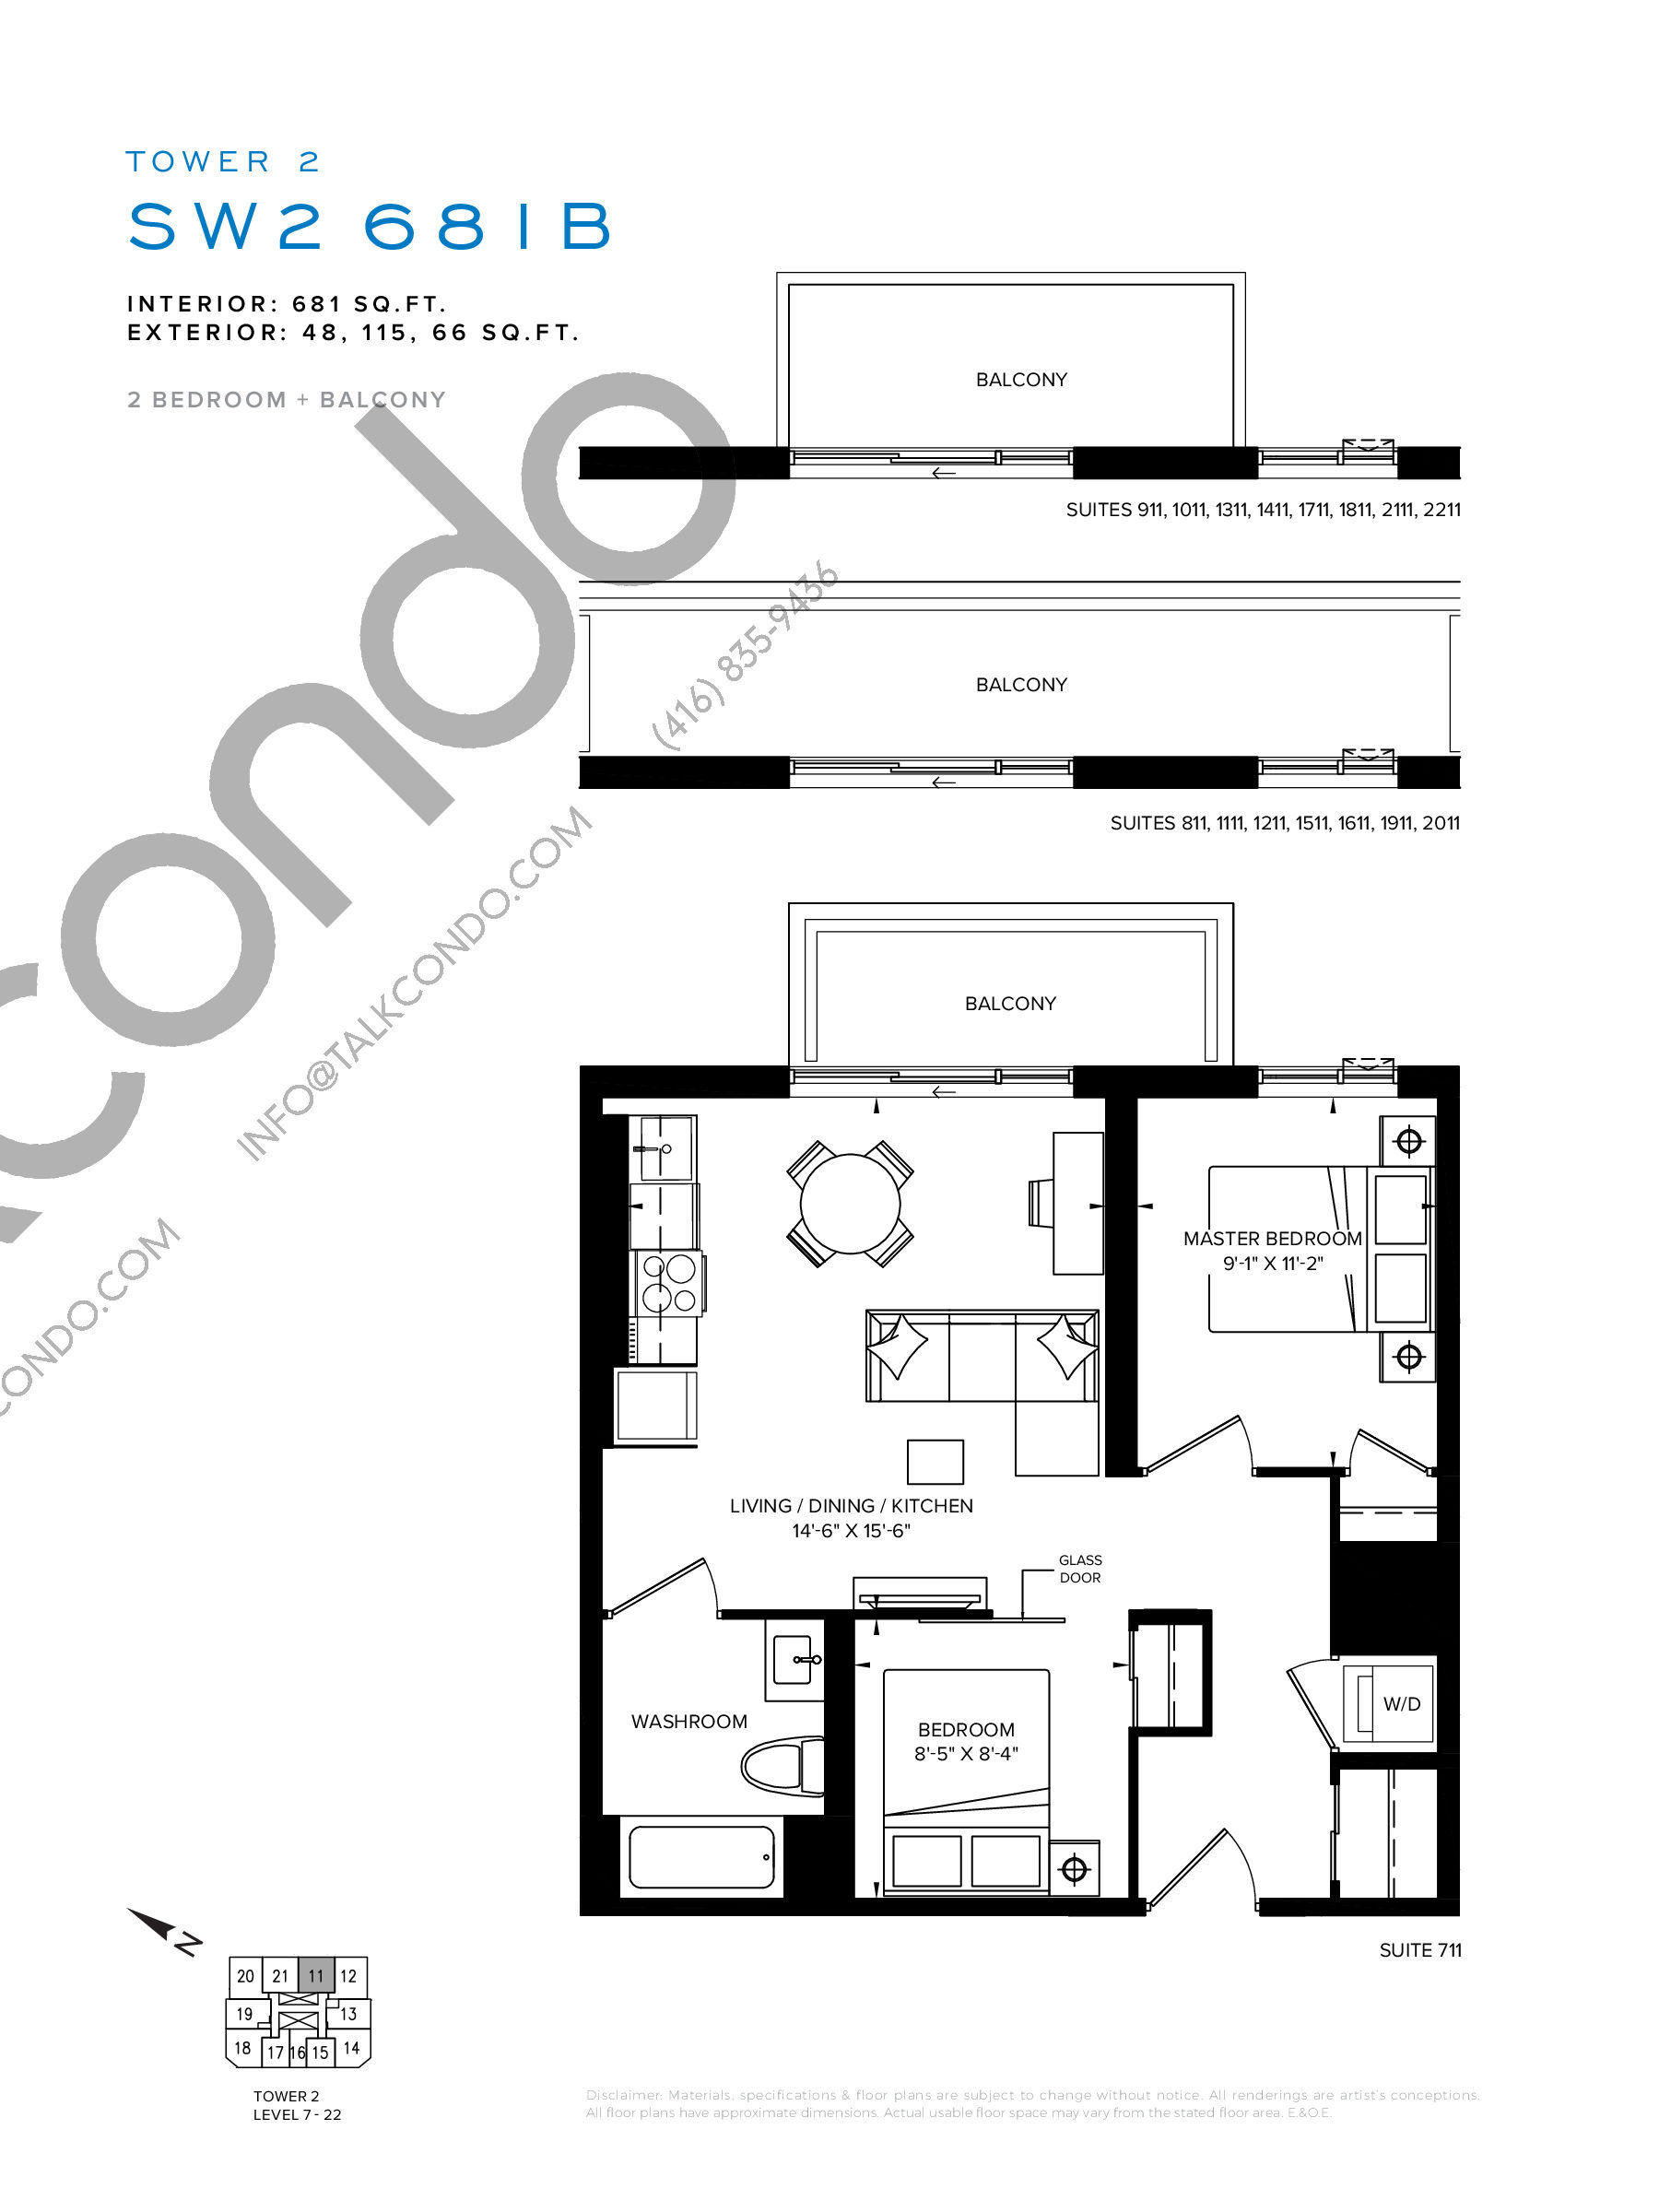 SW2 681B Floor Plan at SXSW Tower 2 Condos (SXSW2) - 681 sq.ft